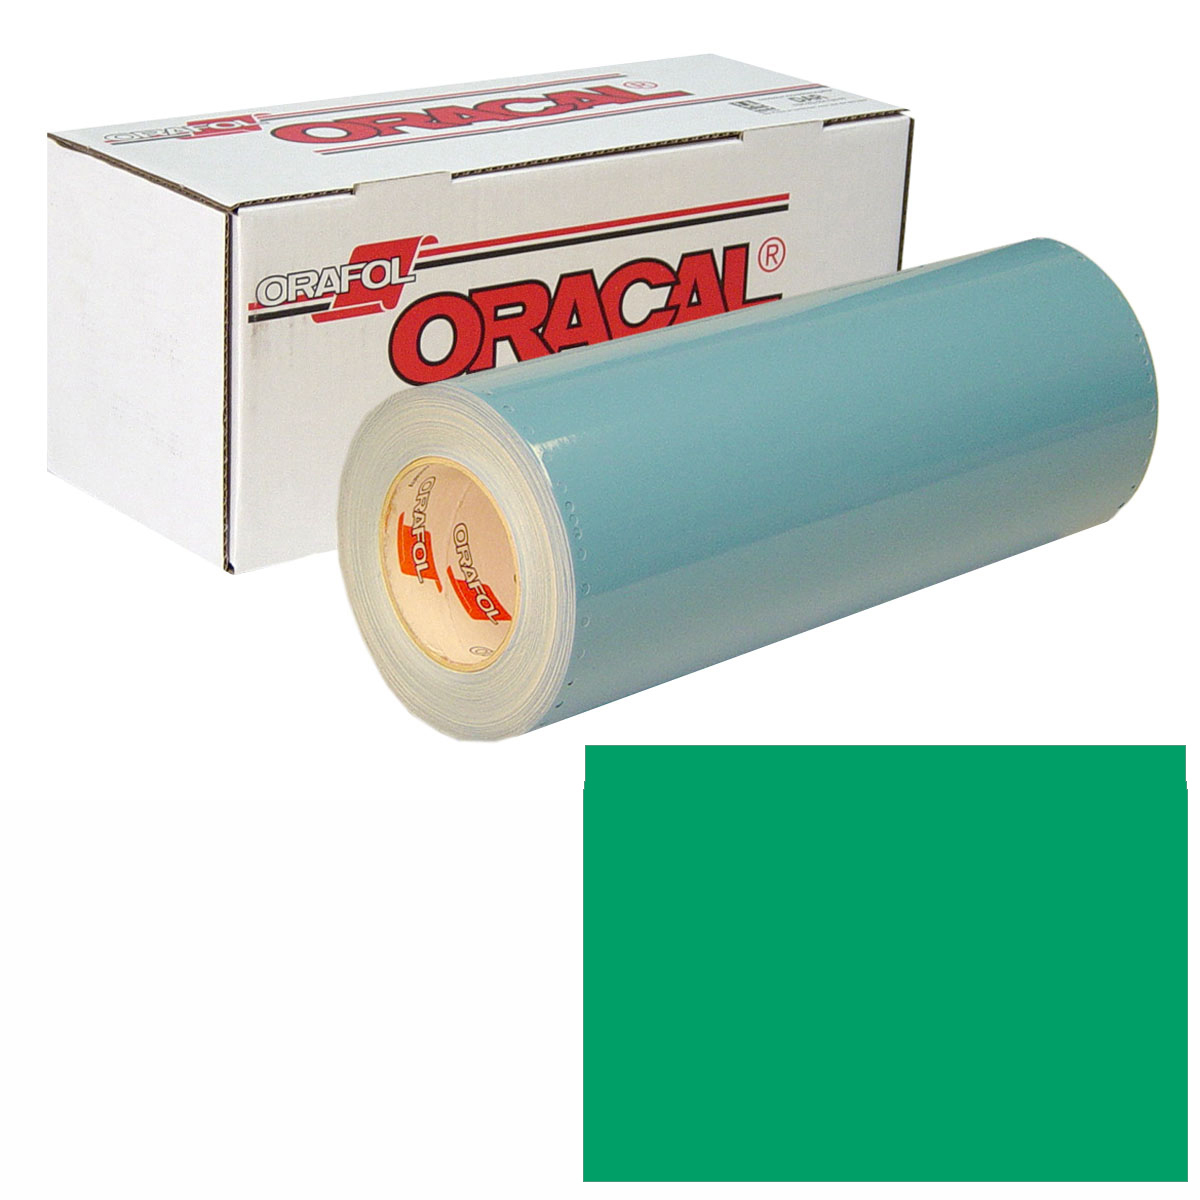 ORACAL 751 Unp 24In X 10Yd 068 Grass Green